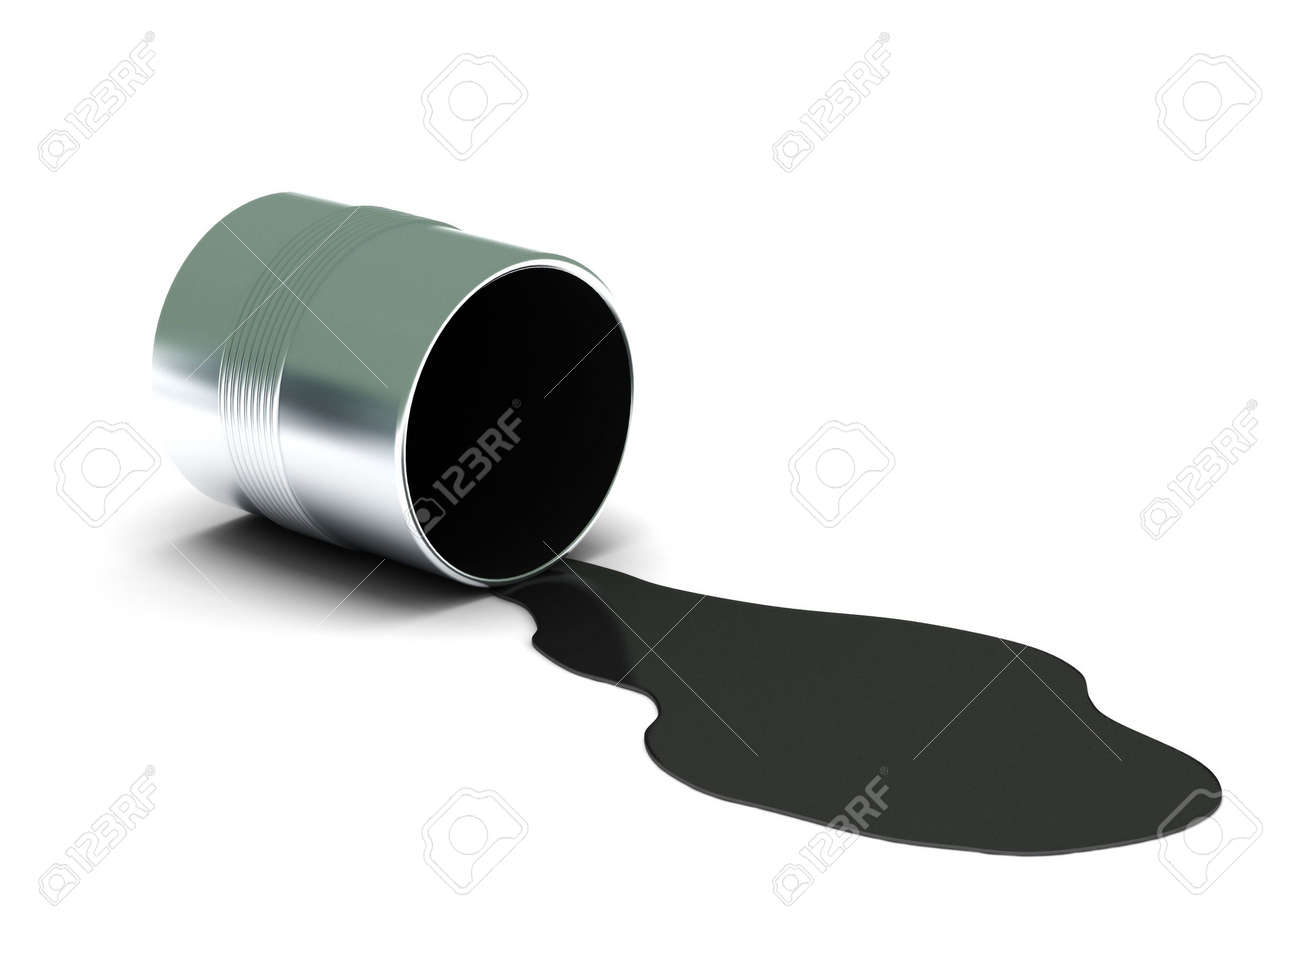 Black spilled paint isolated on white background. High quality 3d render. Stock Photo - 6973321